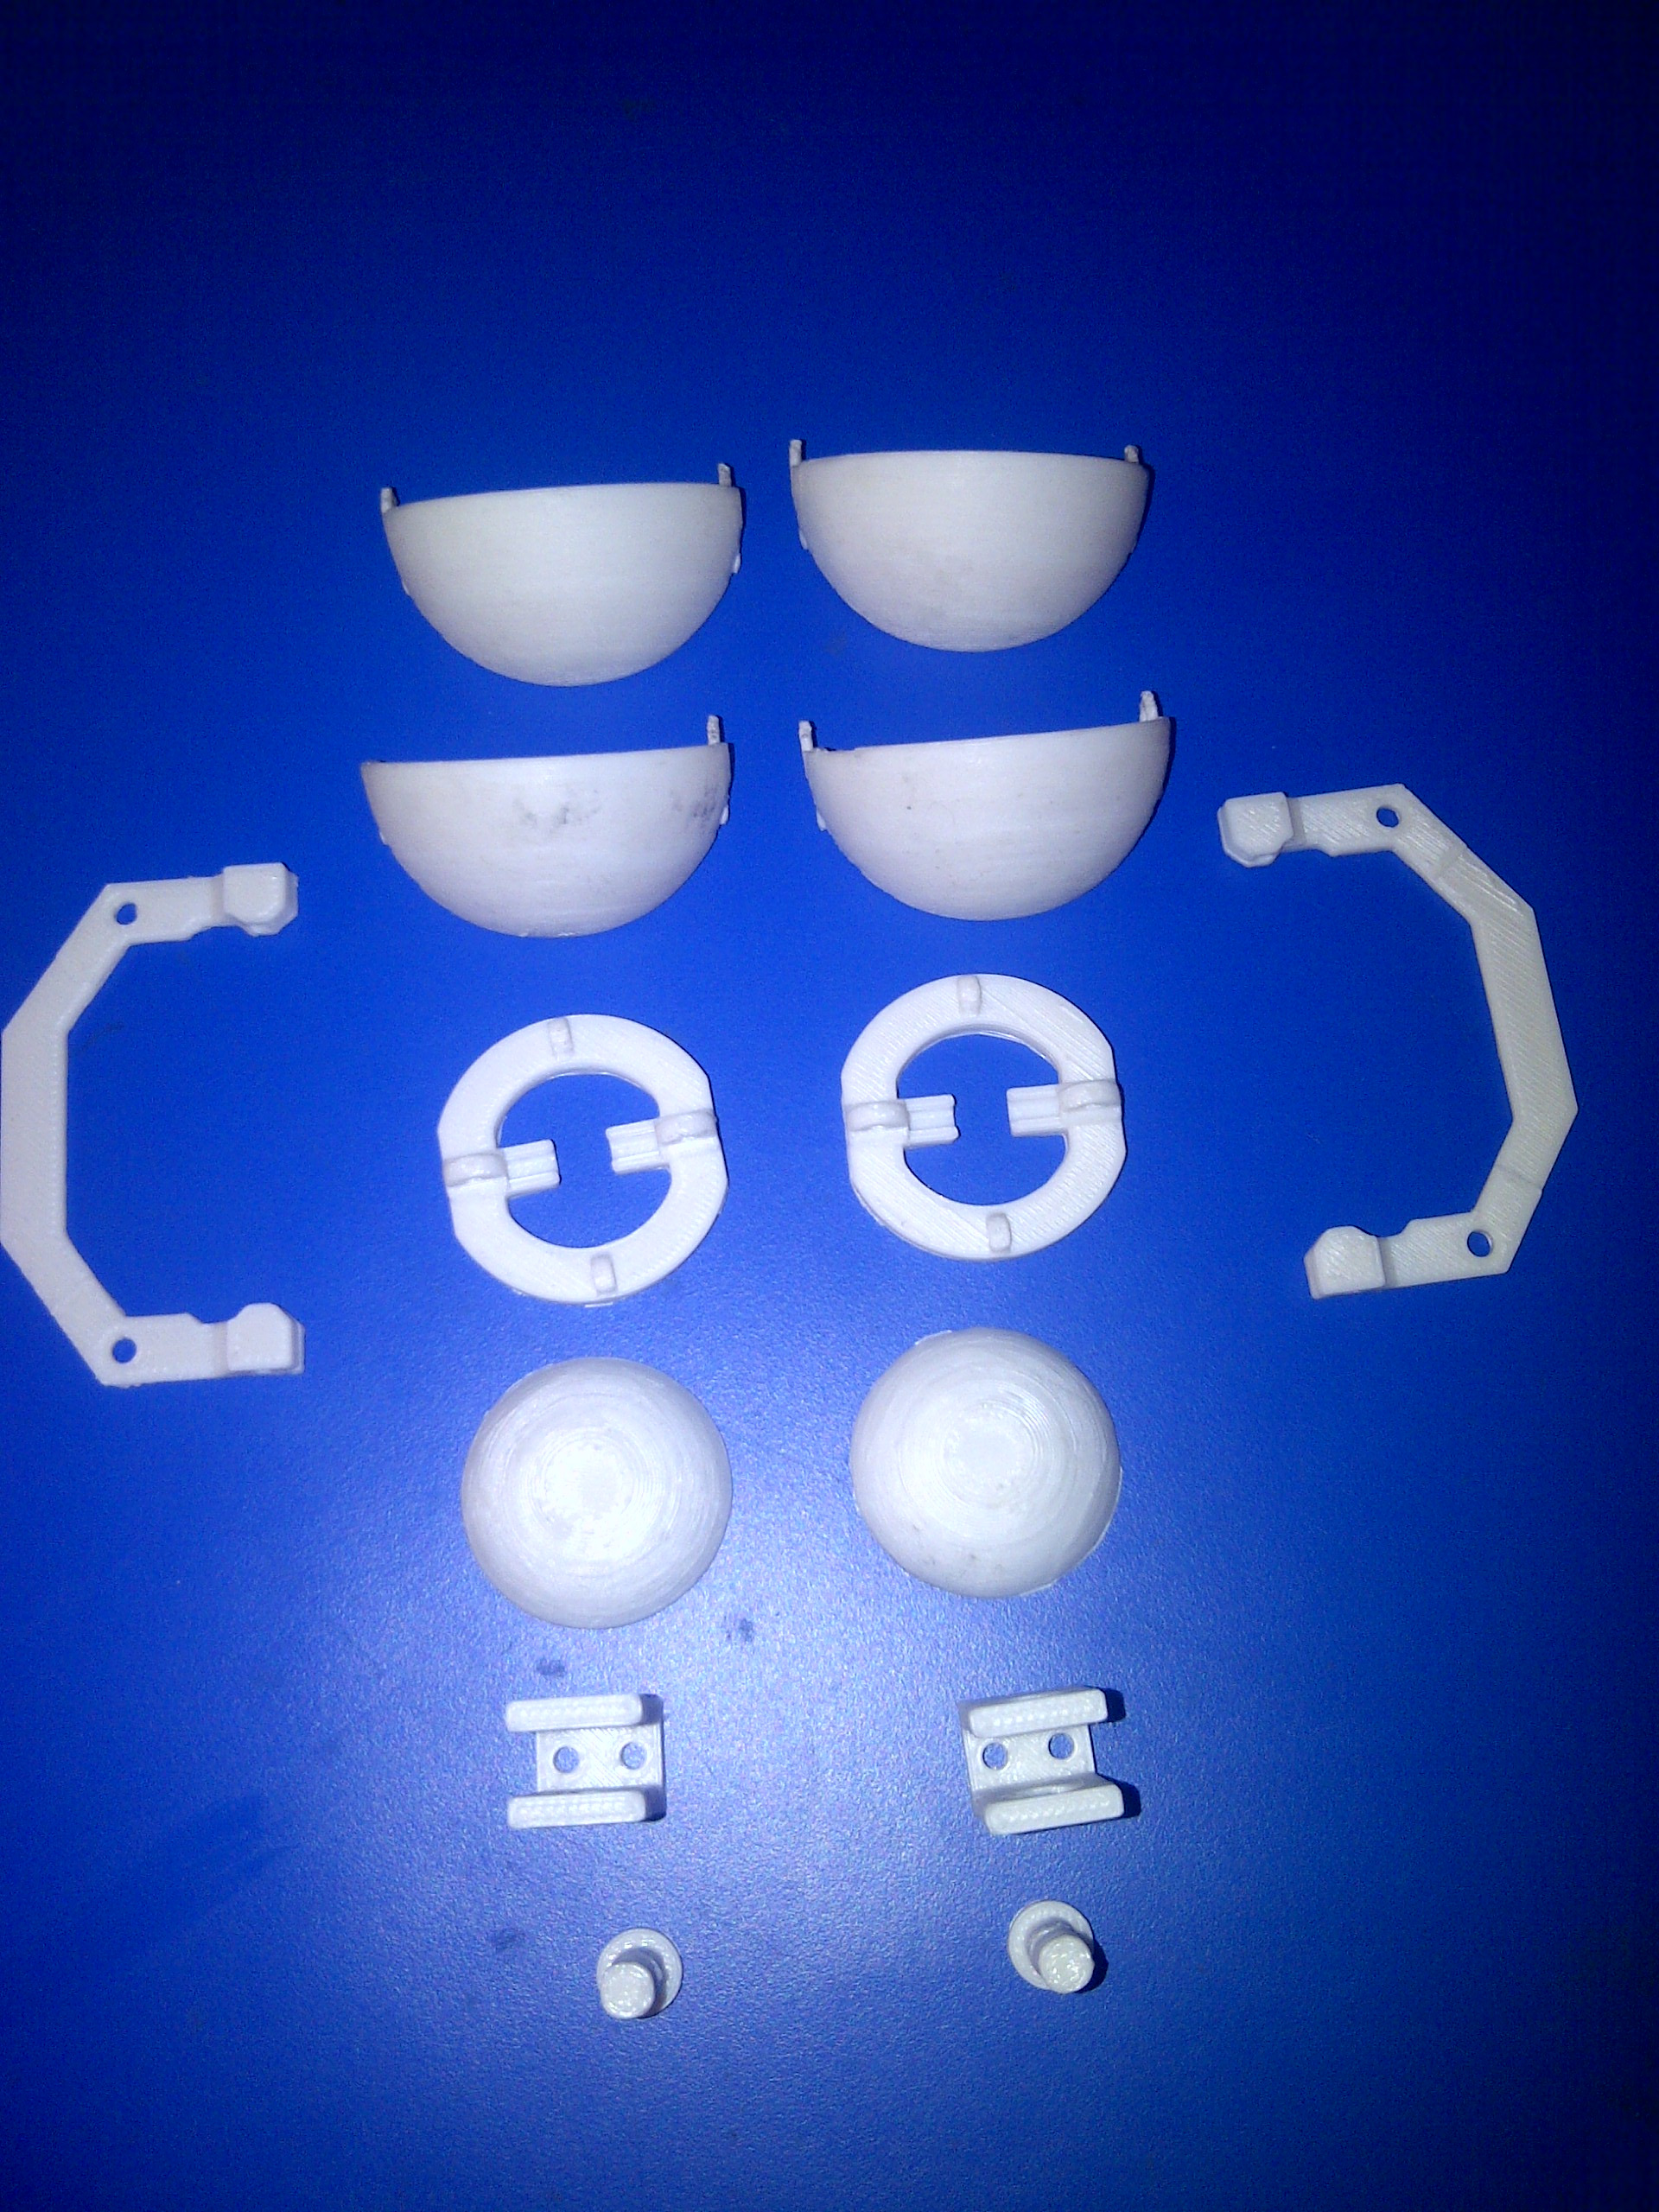 Picture of Put Files for 3d Print.